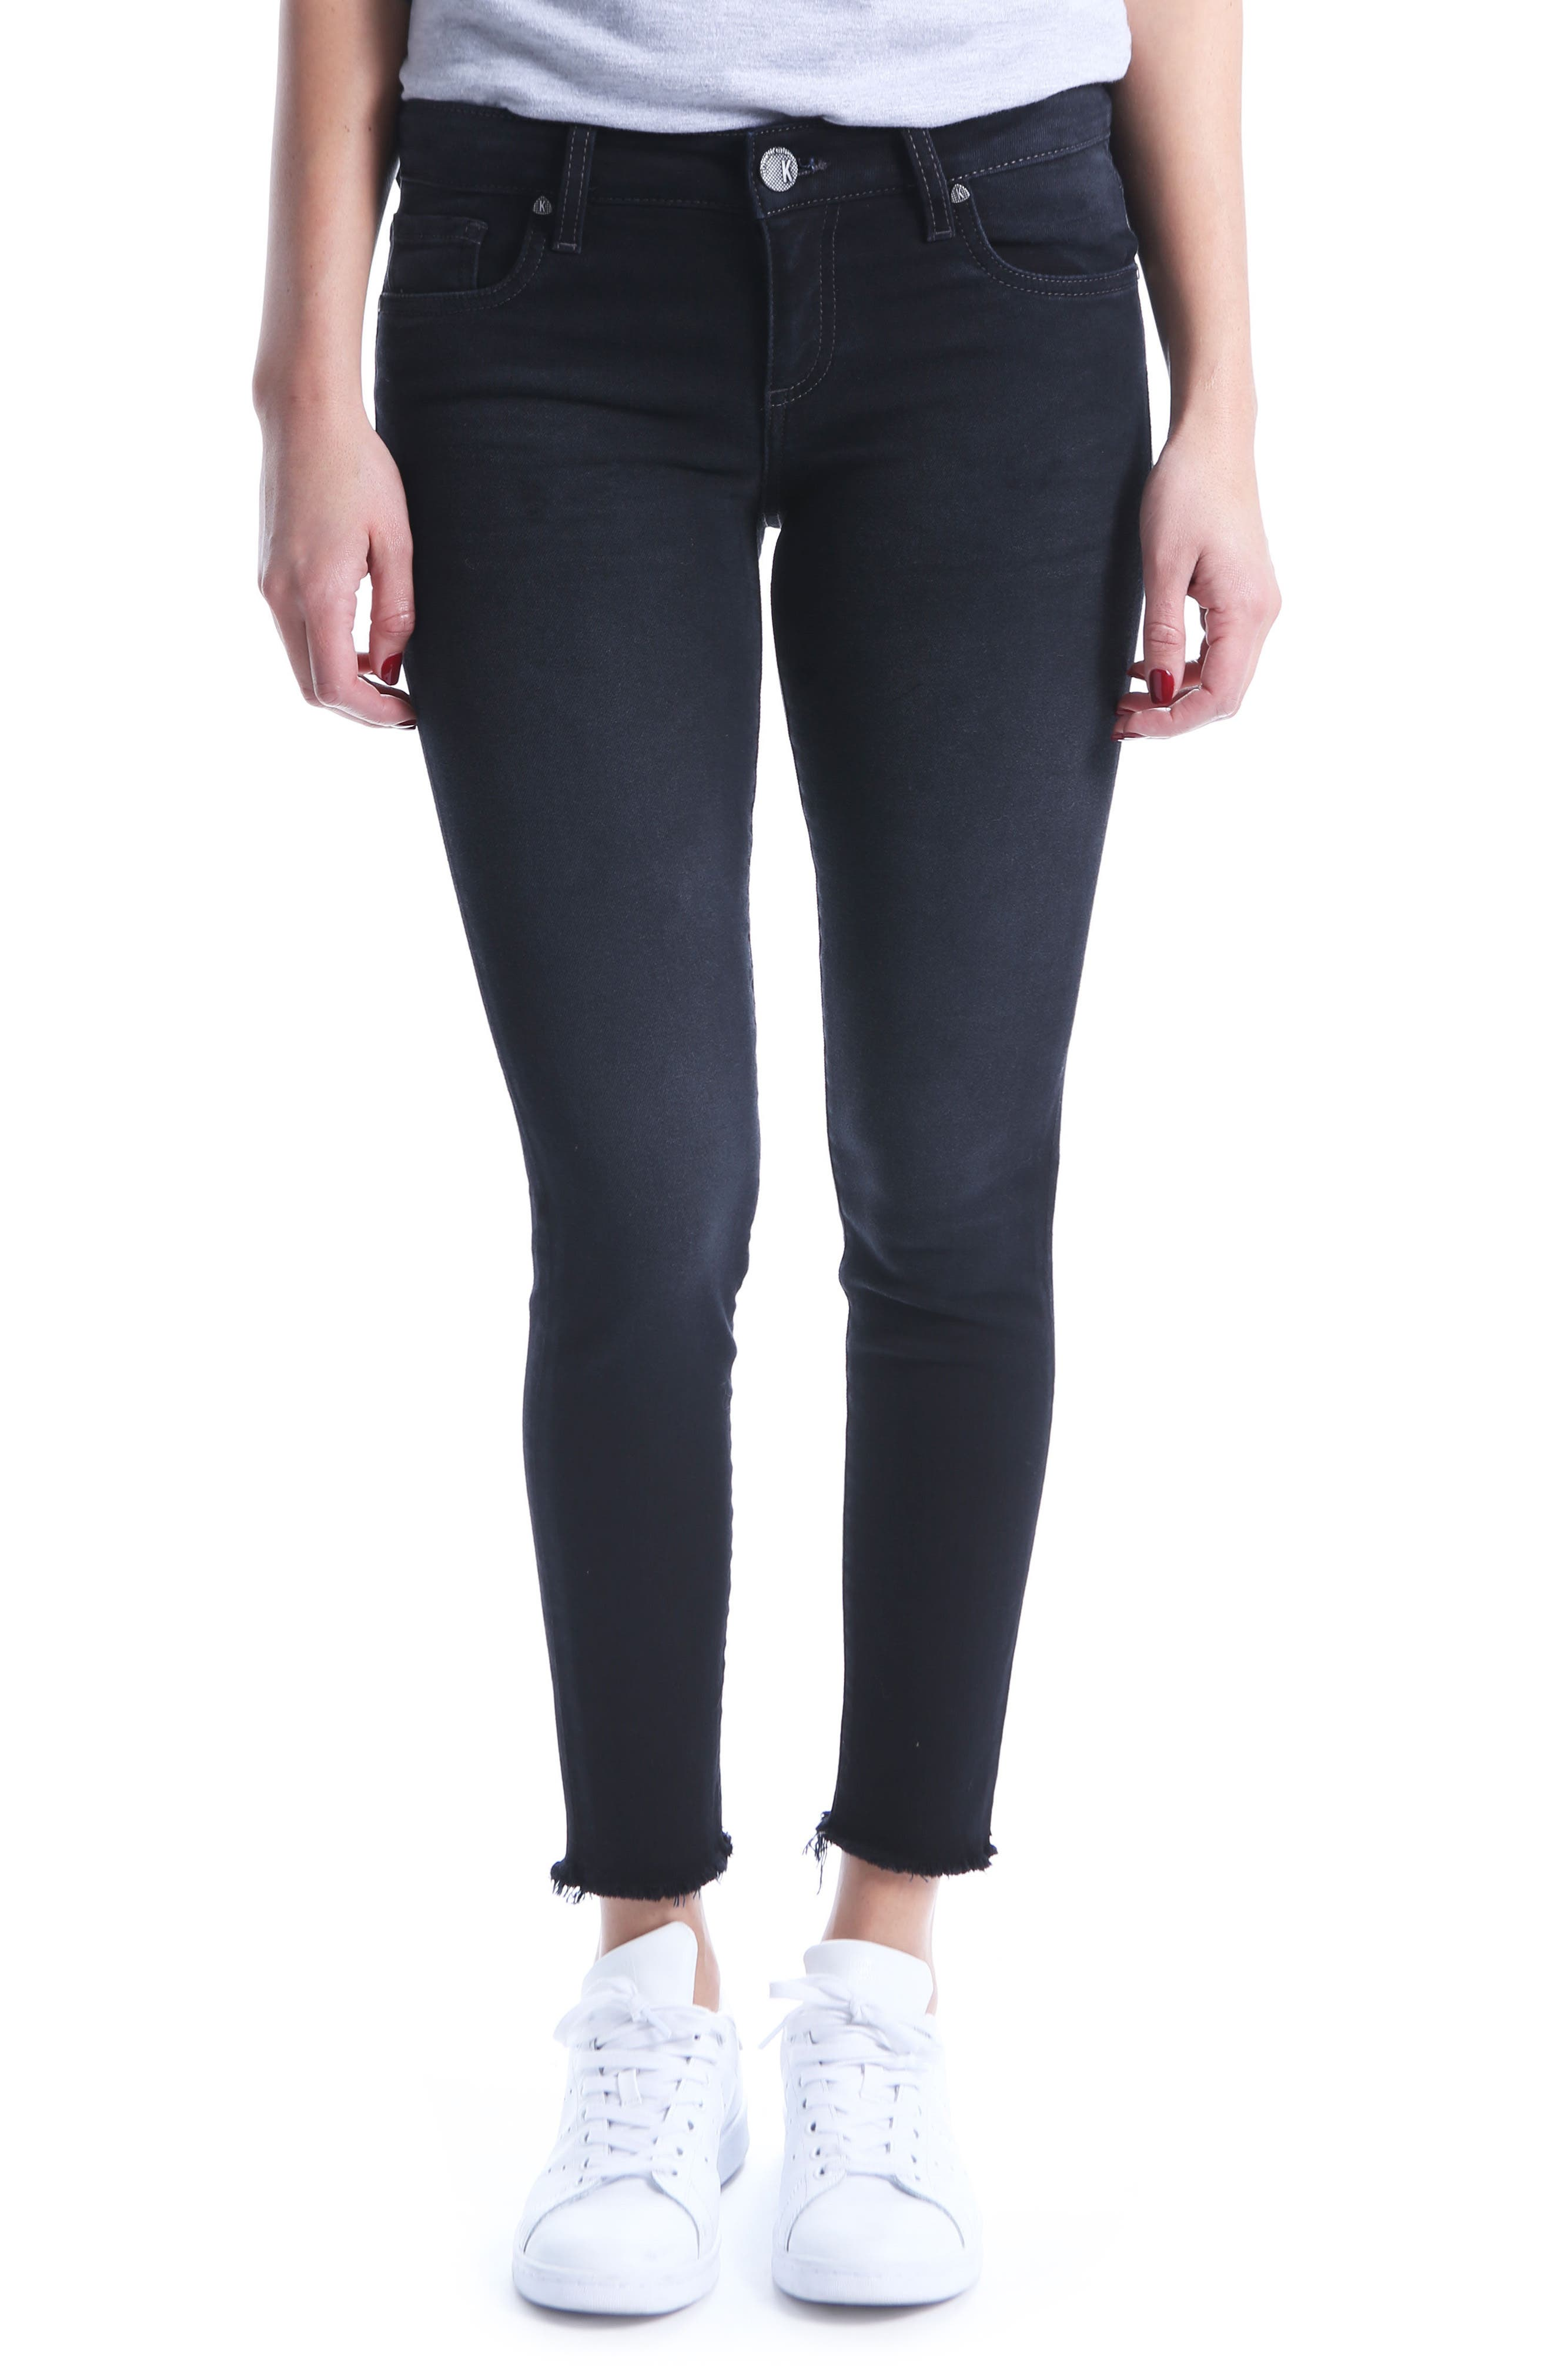 KUT FROM THE KLOTH Donna Ankle Skinny Jeans, Main, color, 001